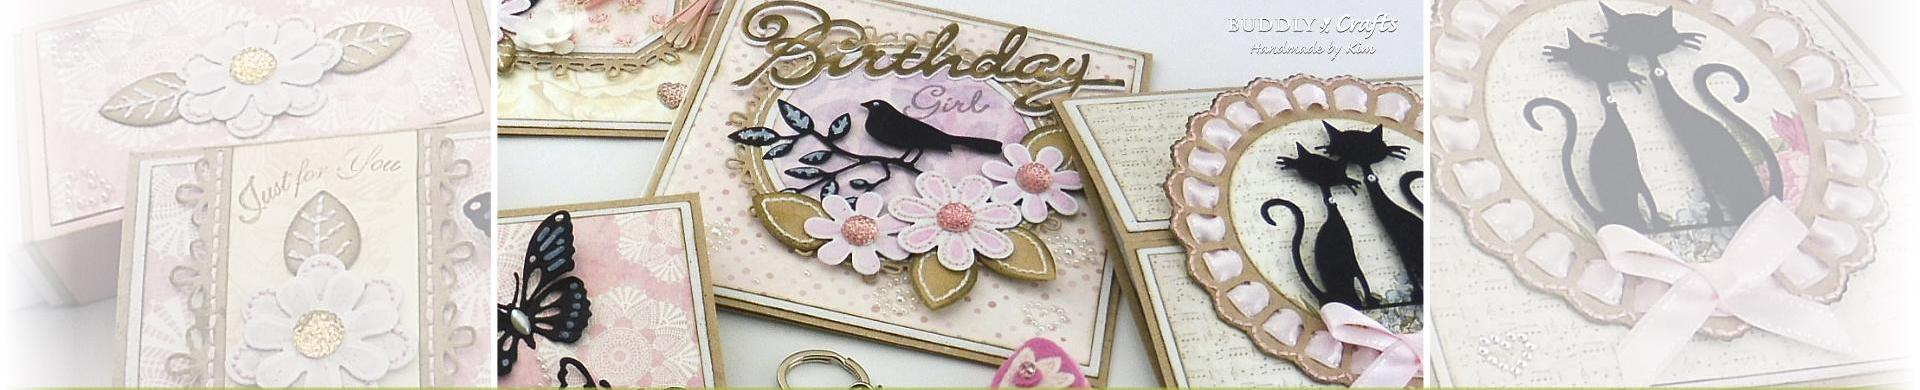 Cutting Dies, Embossing Folders & Machines